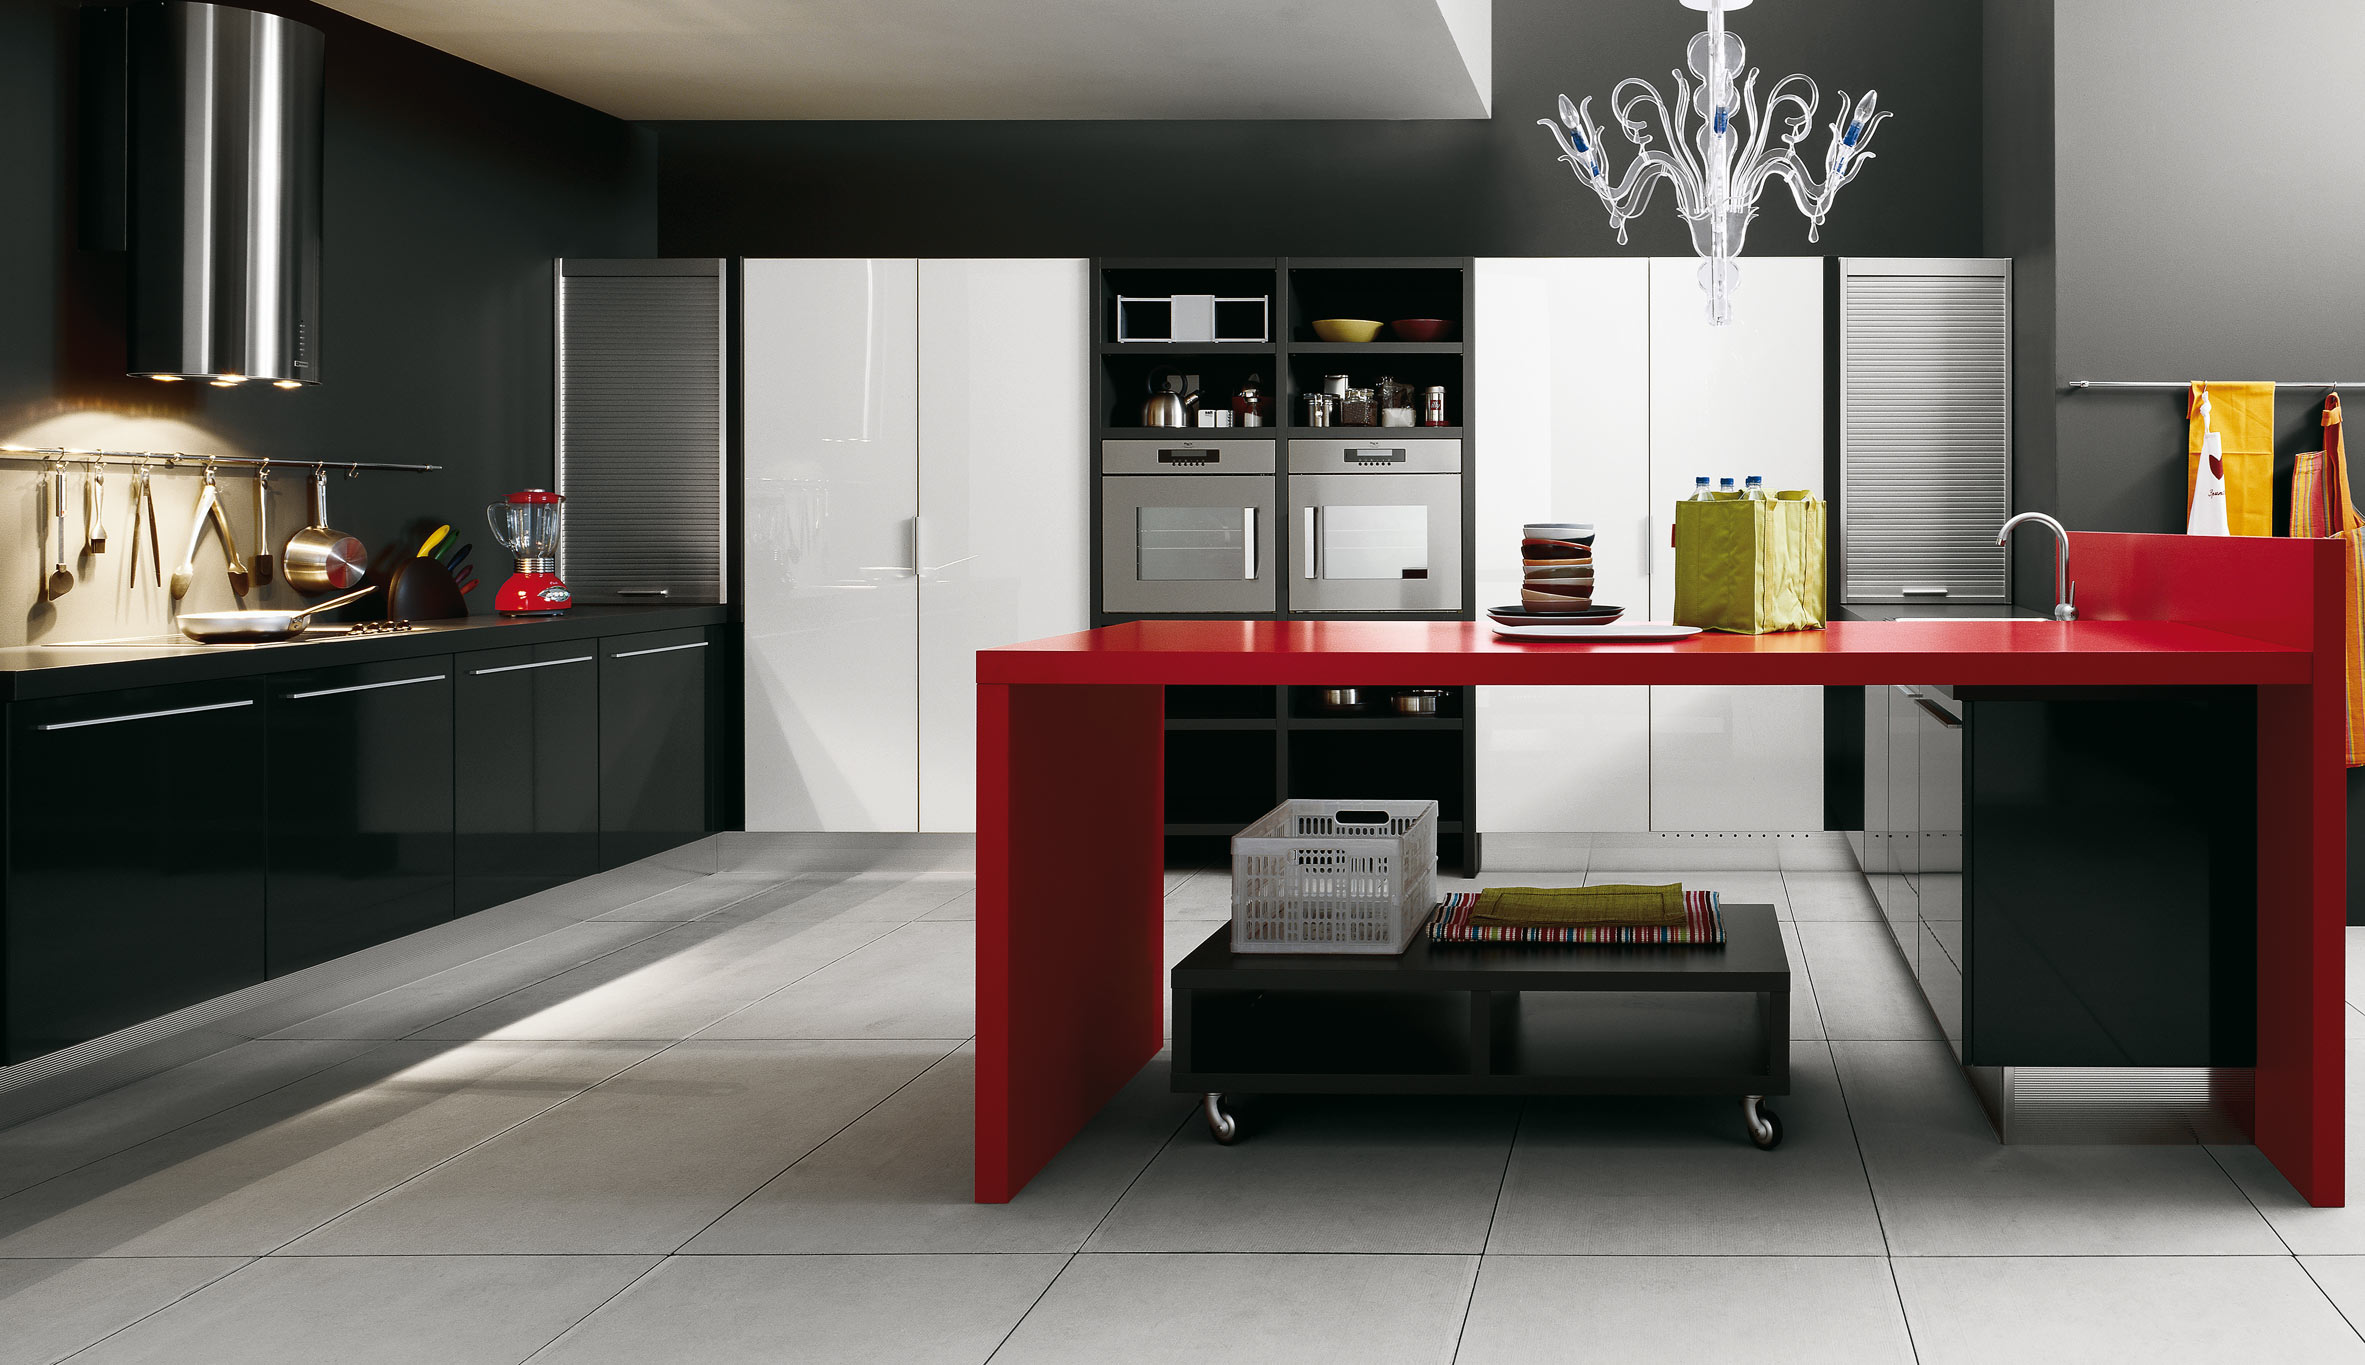 Classy Kitchen Design photo - 9